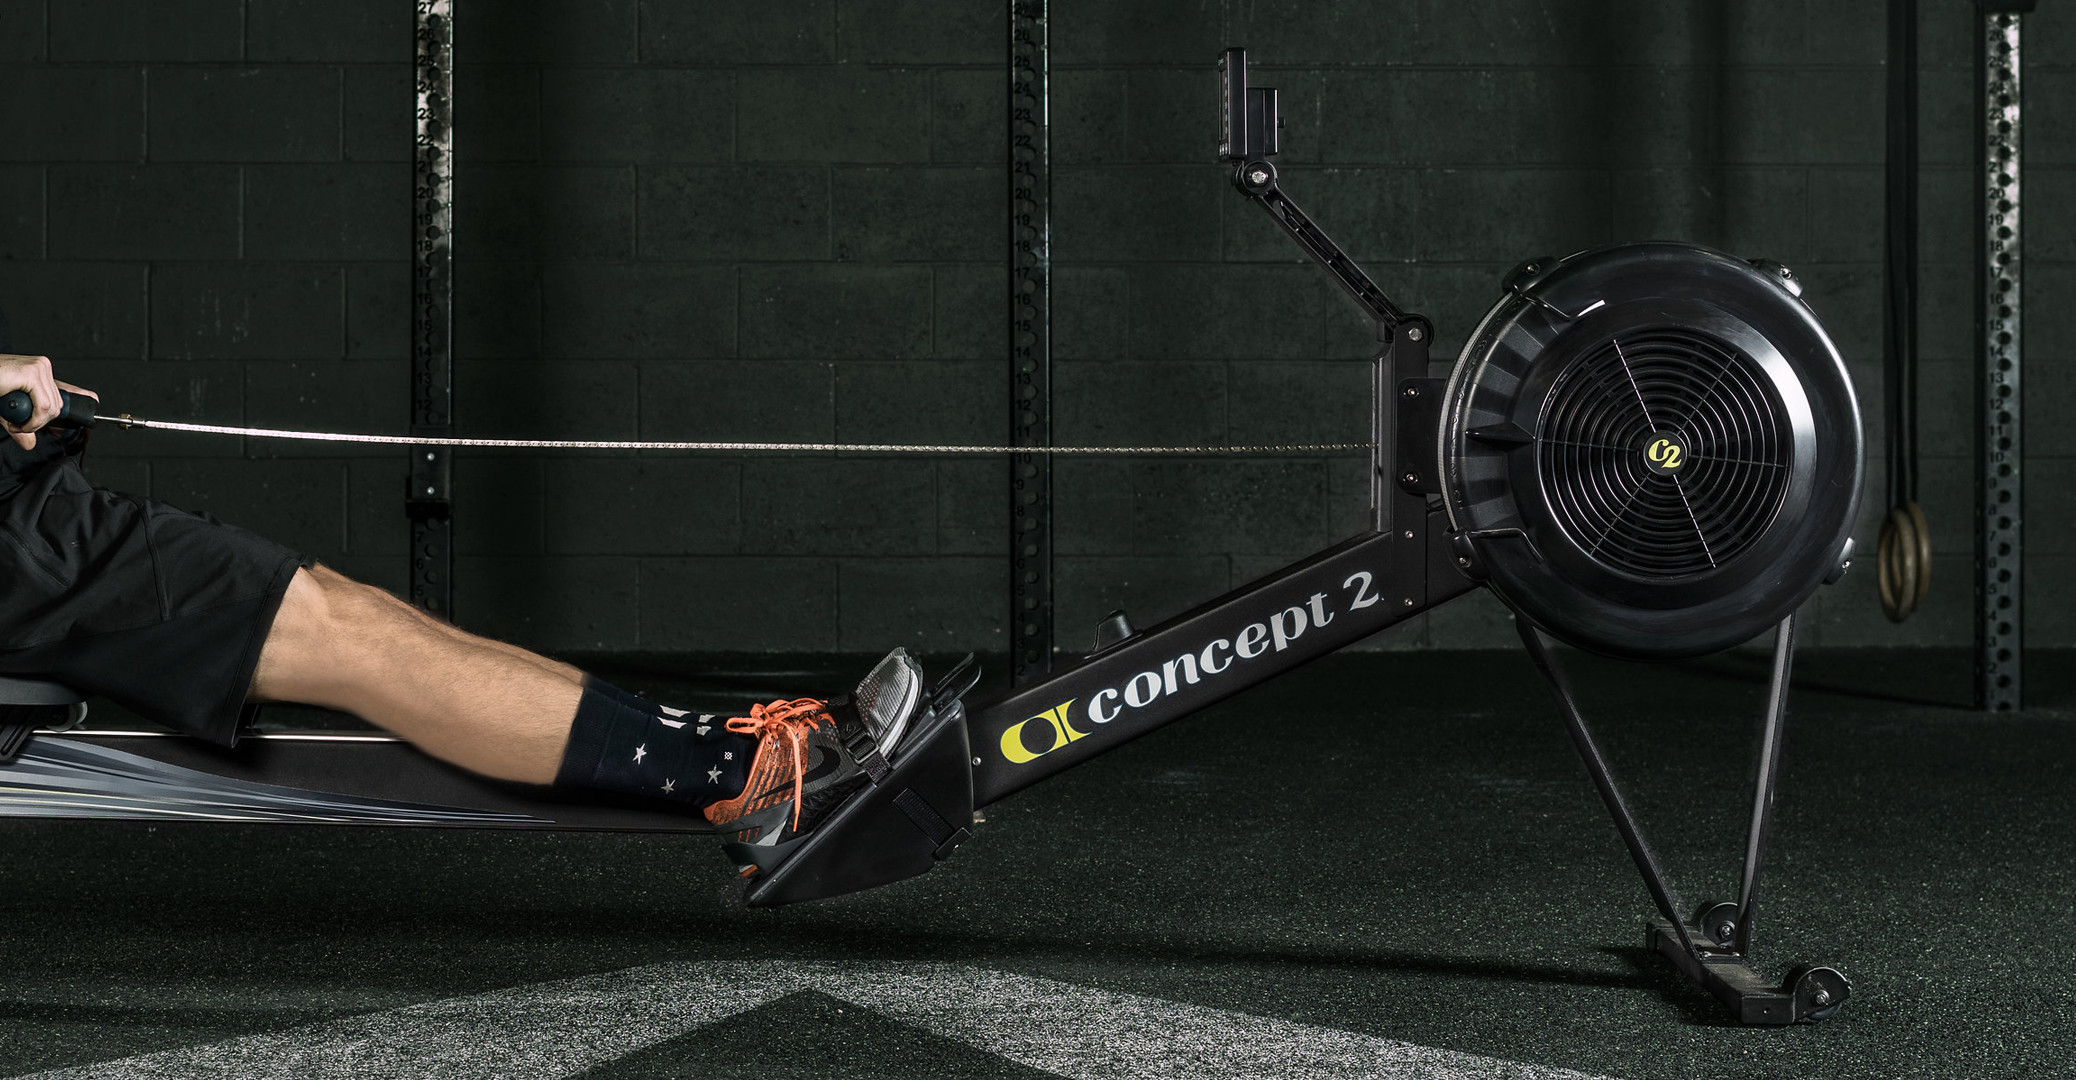 concept 2 rower pm4 manual